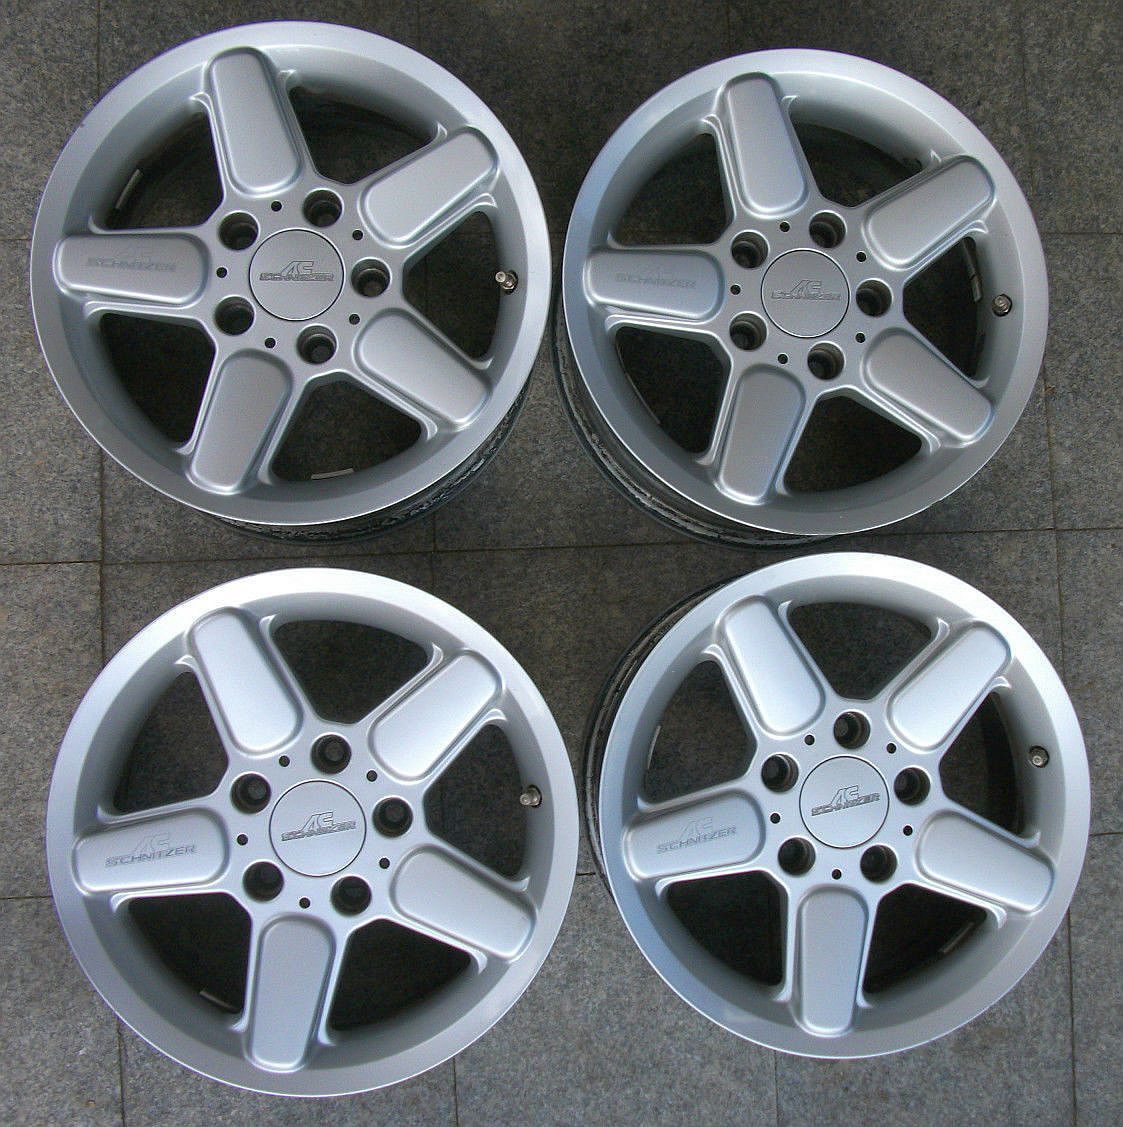 AC Schnitzer Wheels (Pre-owned BMW Silver Alloy Rims